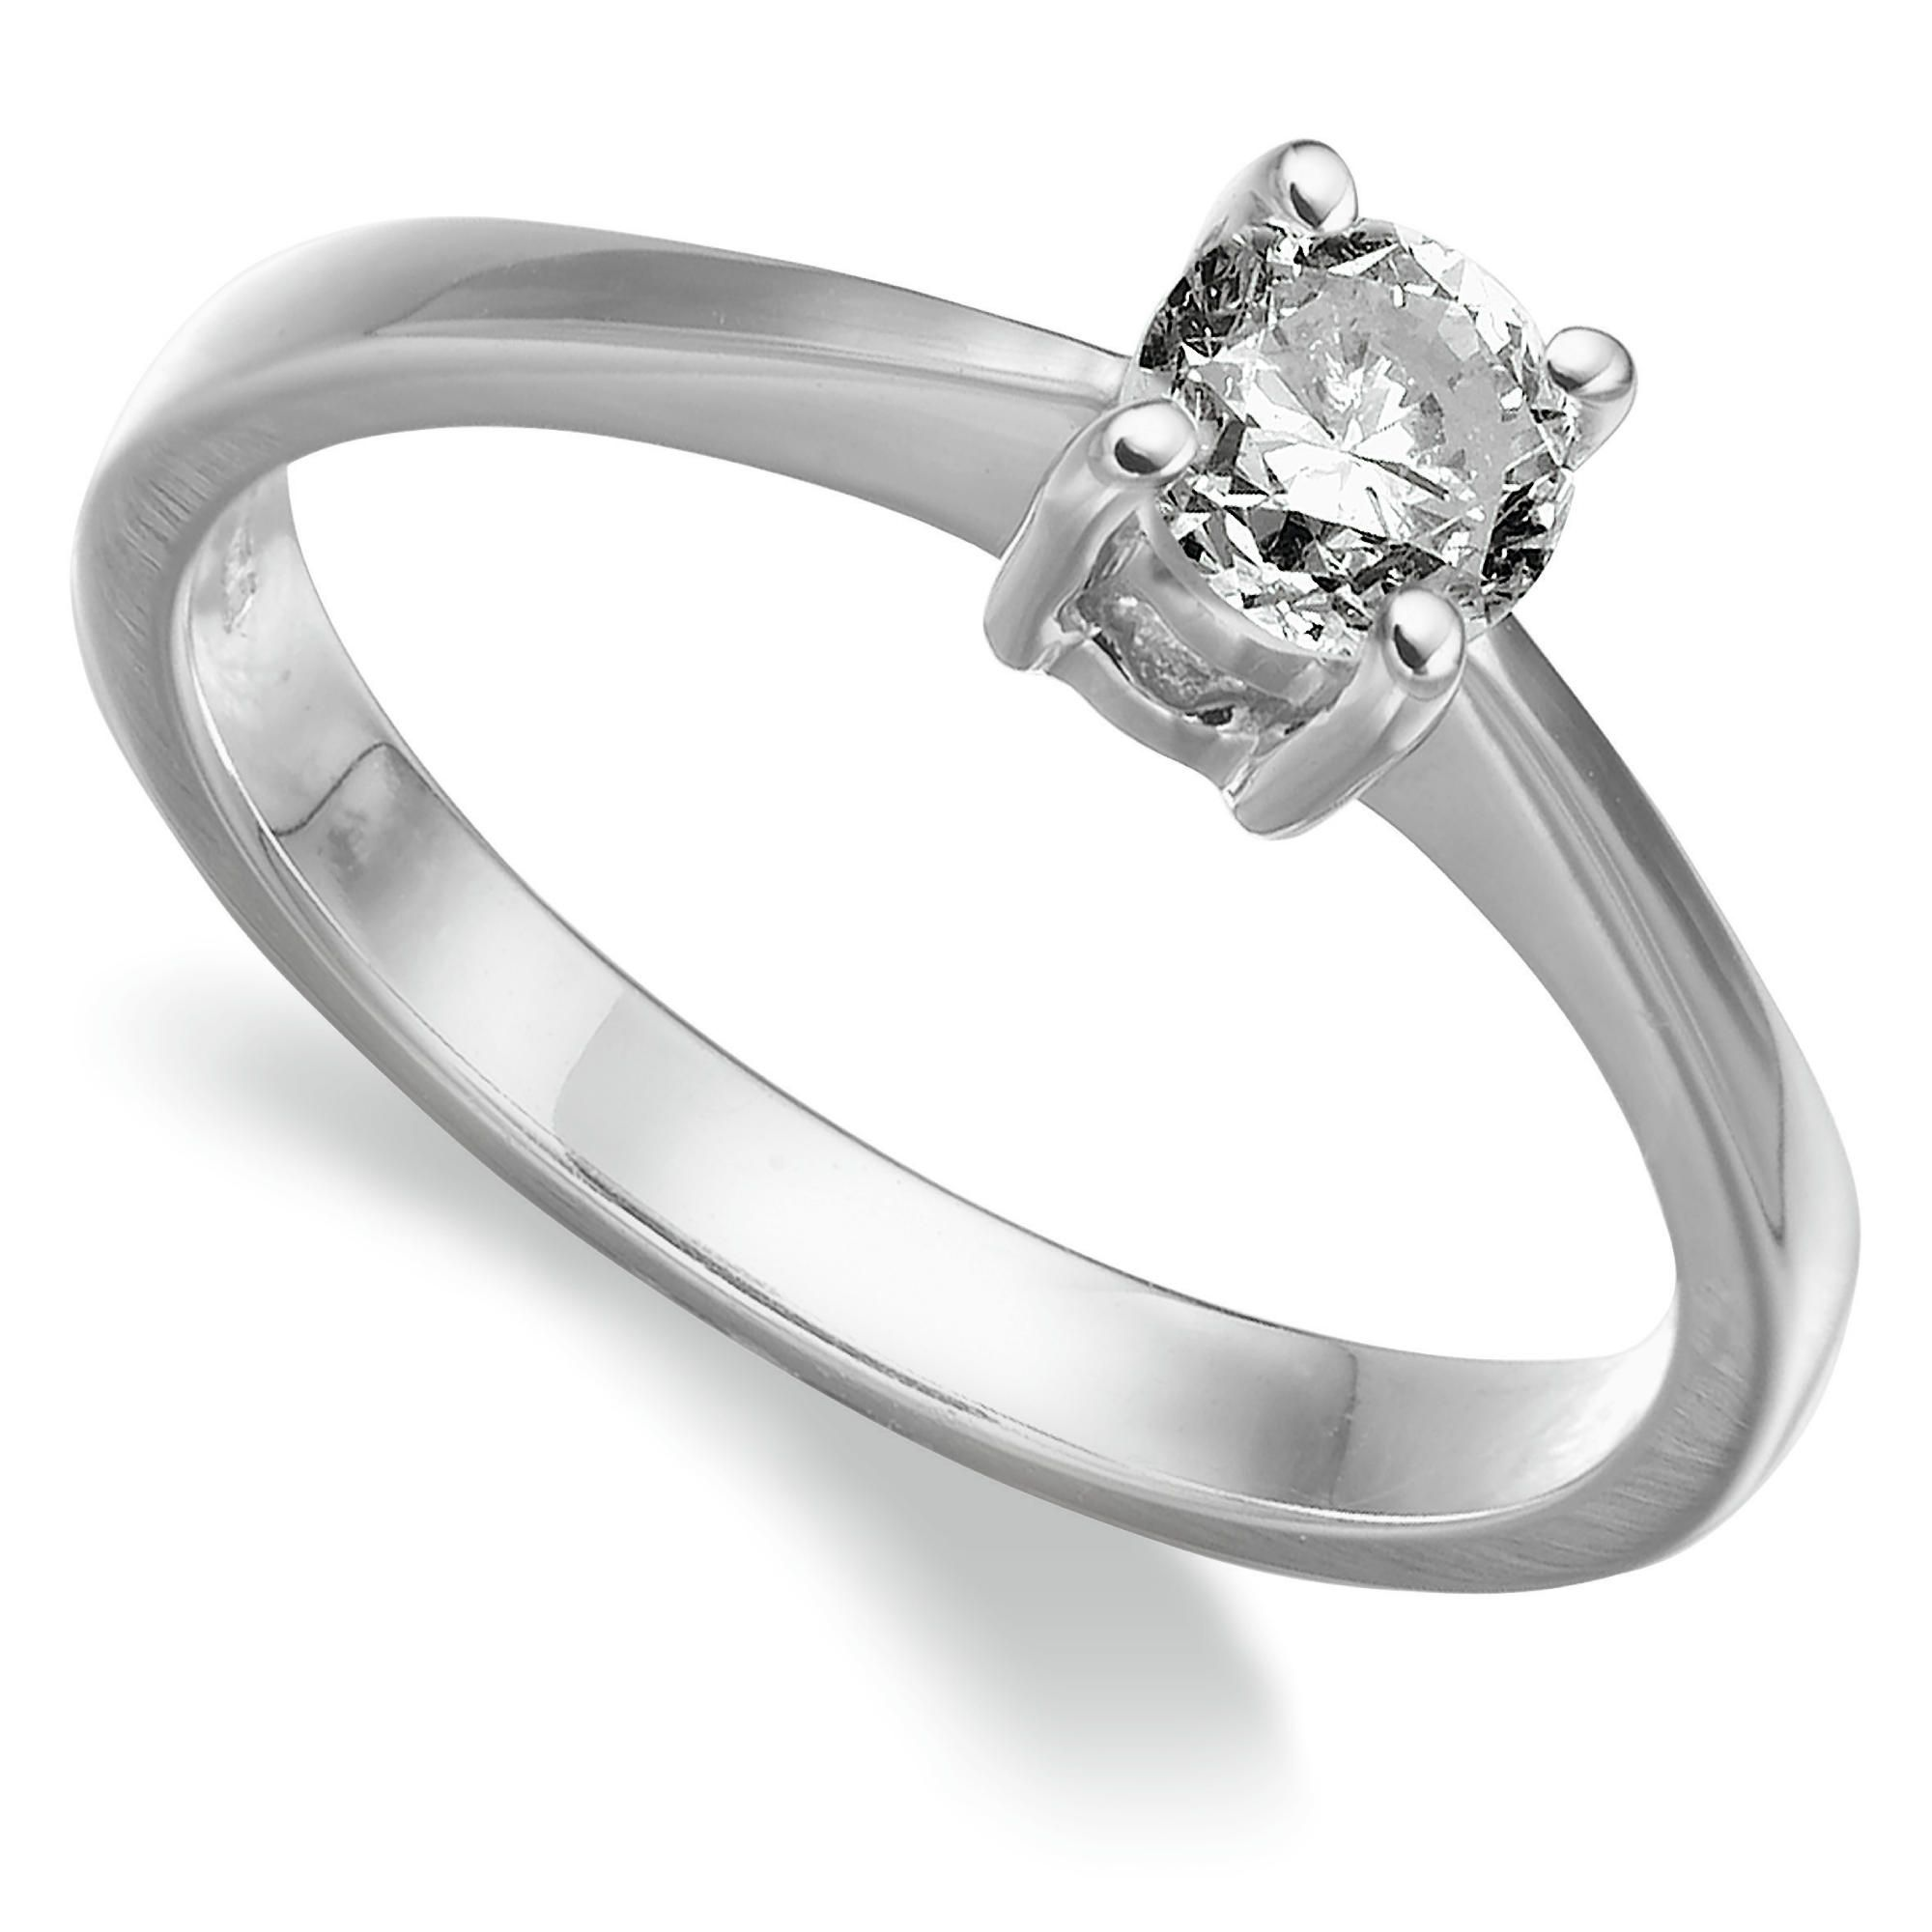 18ct white gold 1/2ct diamond solitaire ring, T at Tesco Direct